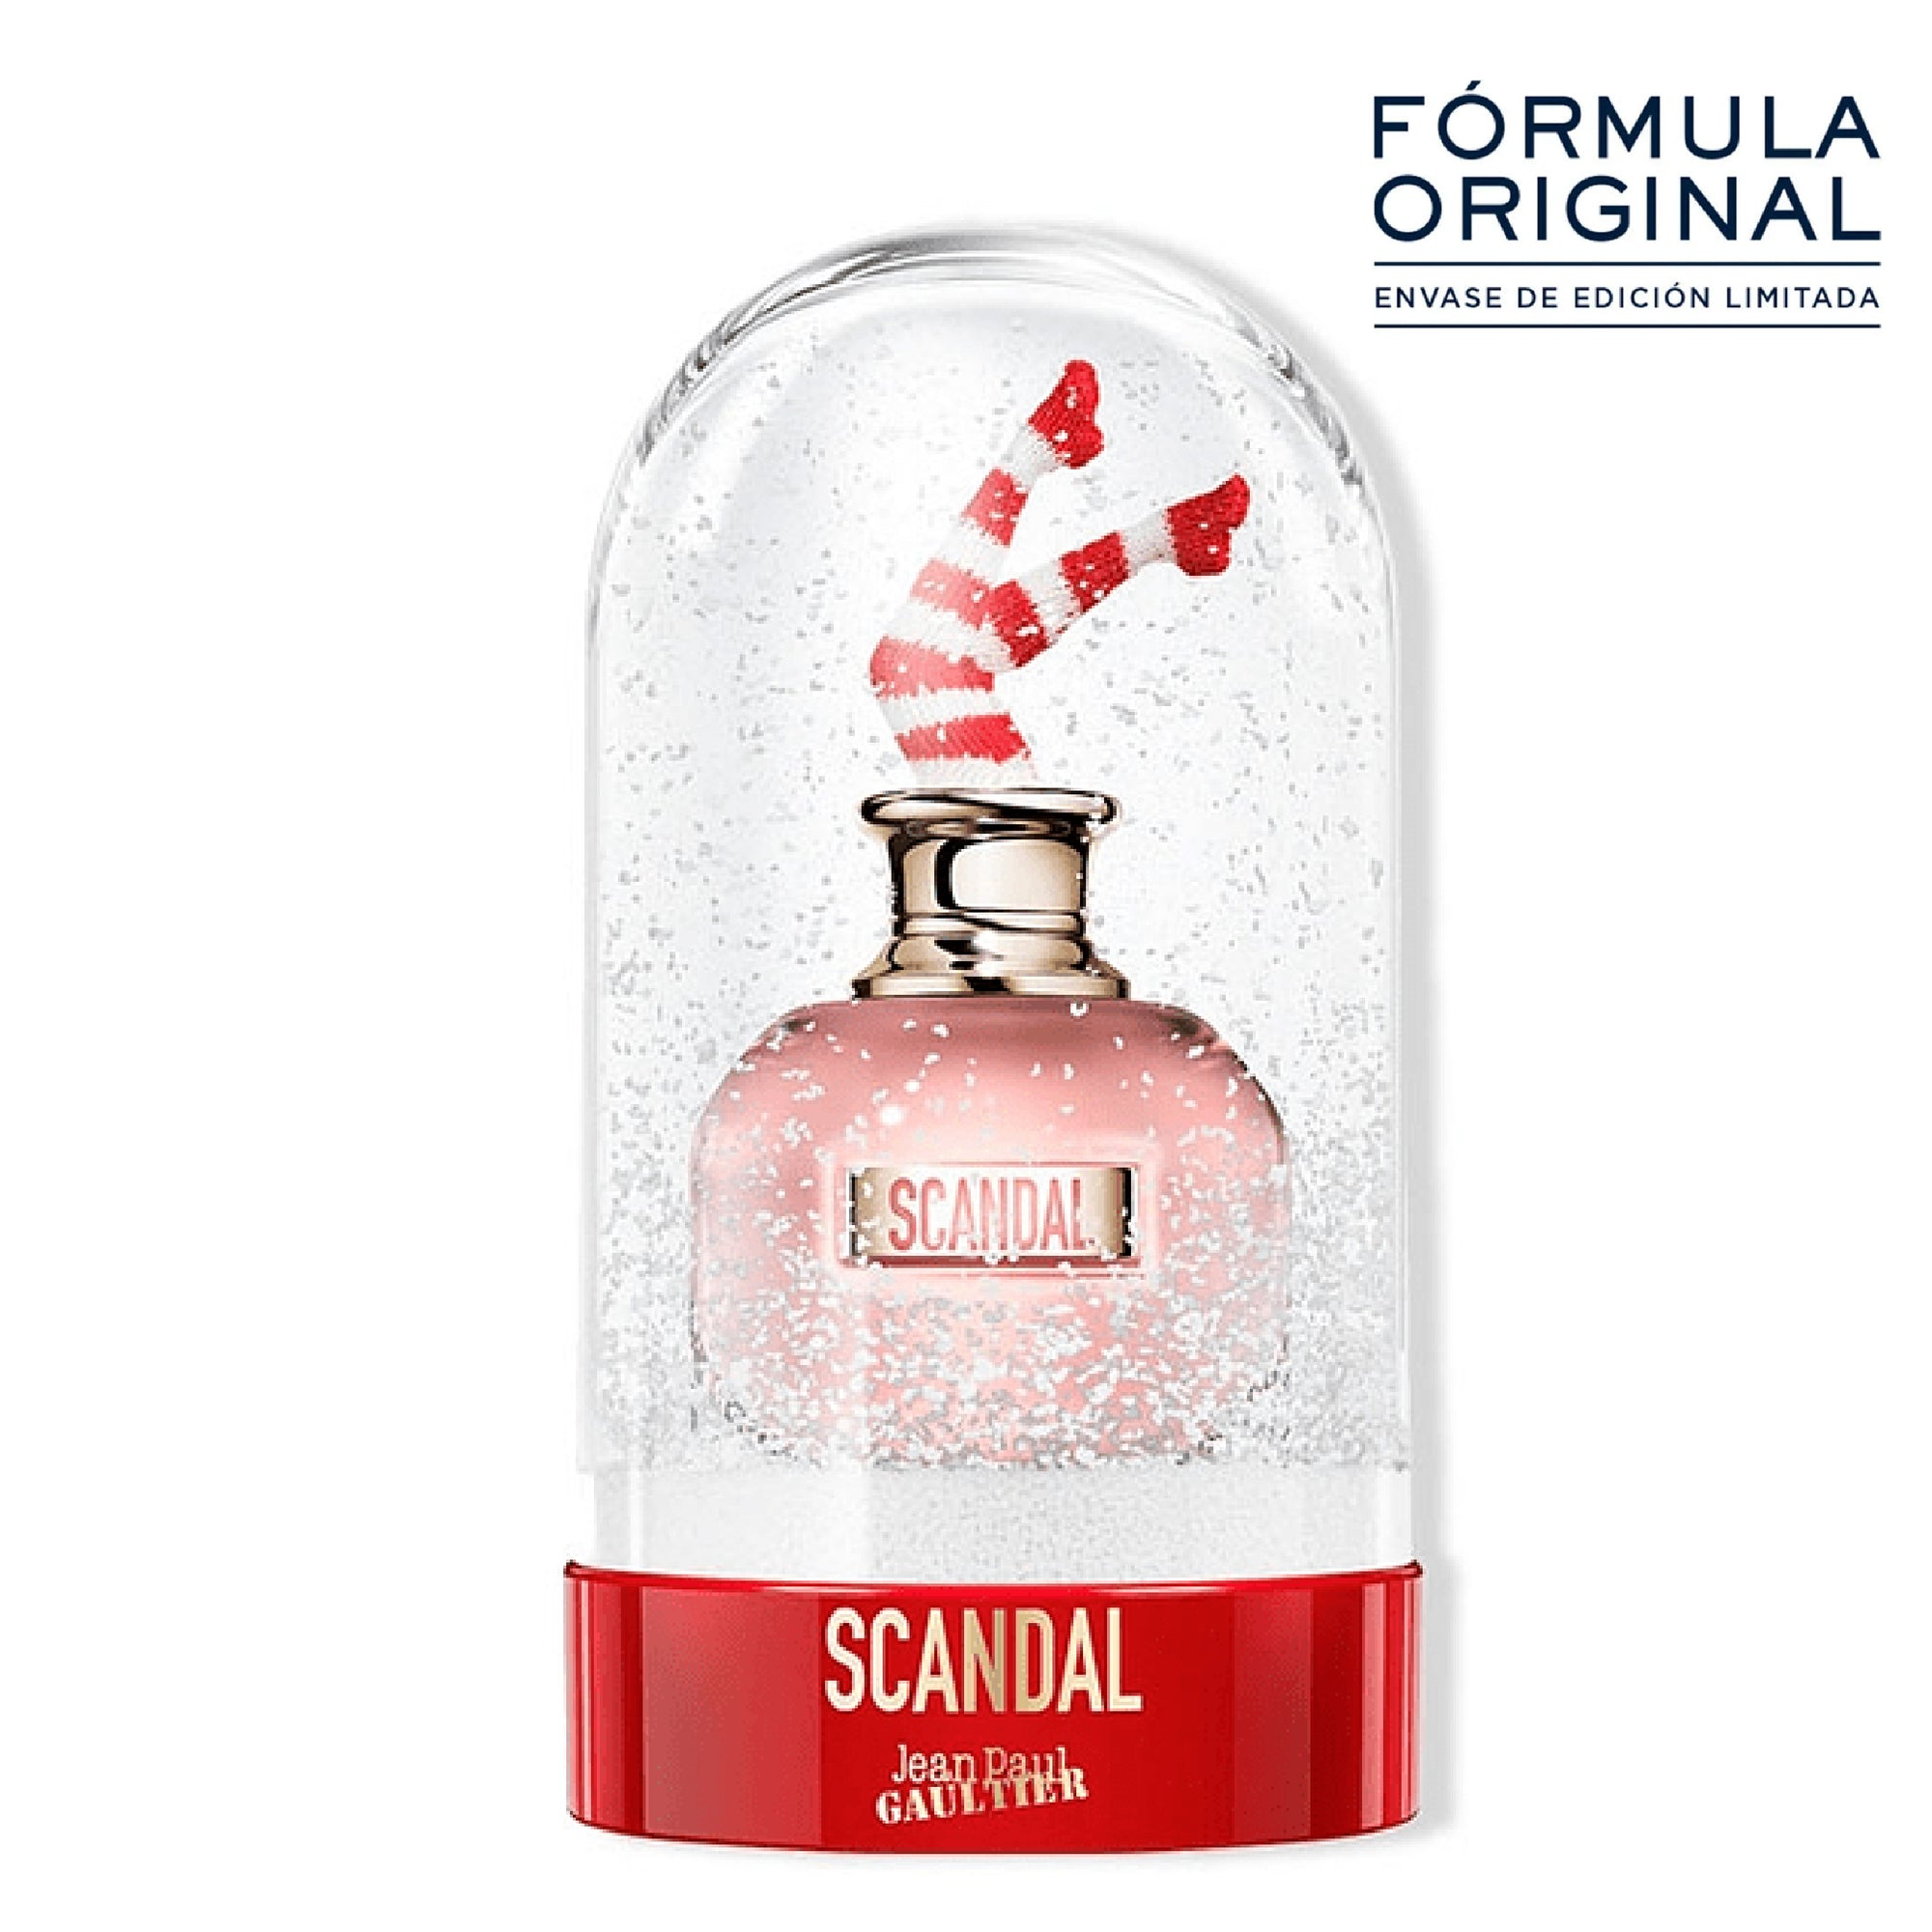 Scandal Edp 80 ml - Jean Paul Gaultier (Christmas Edition)